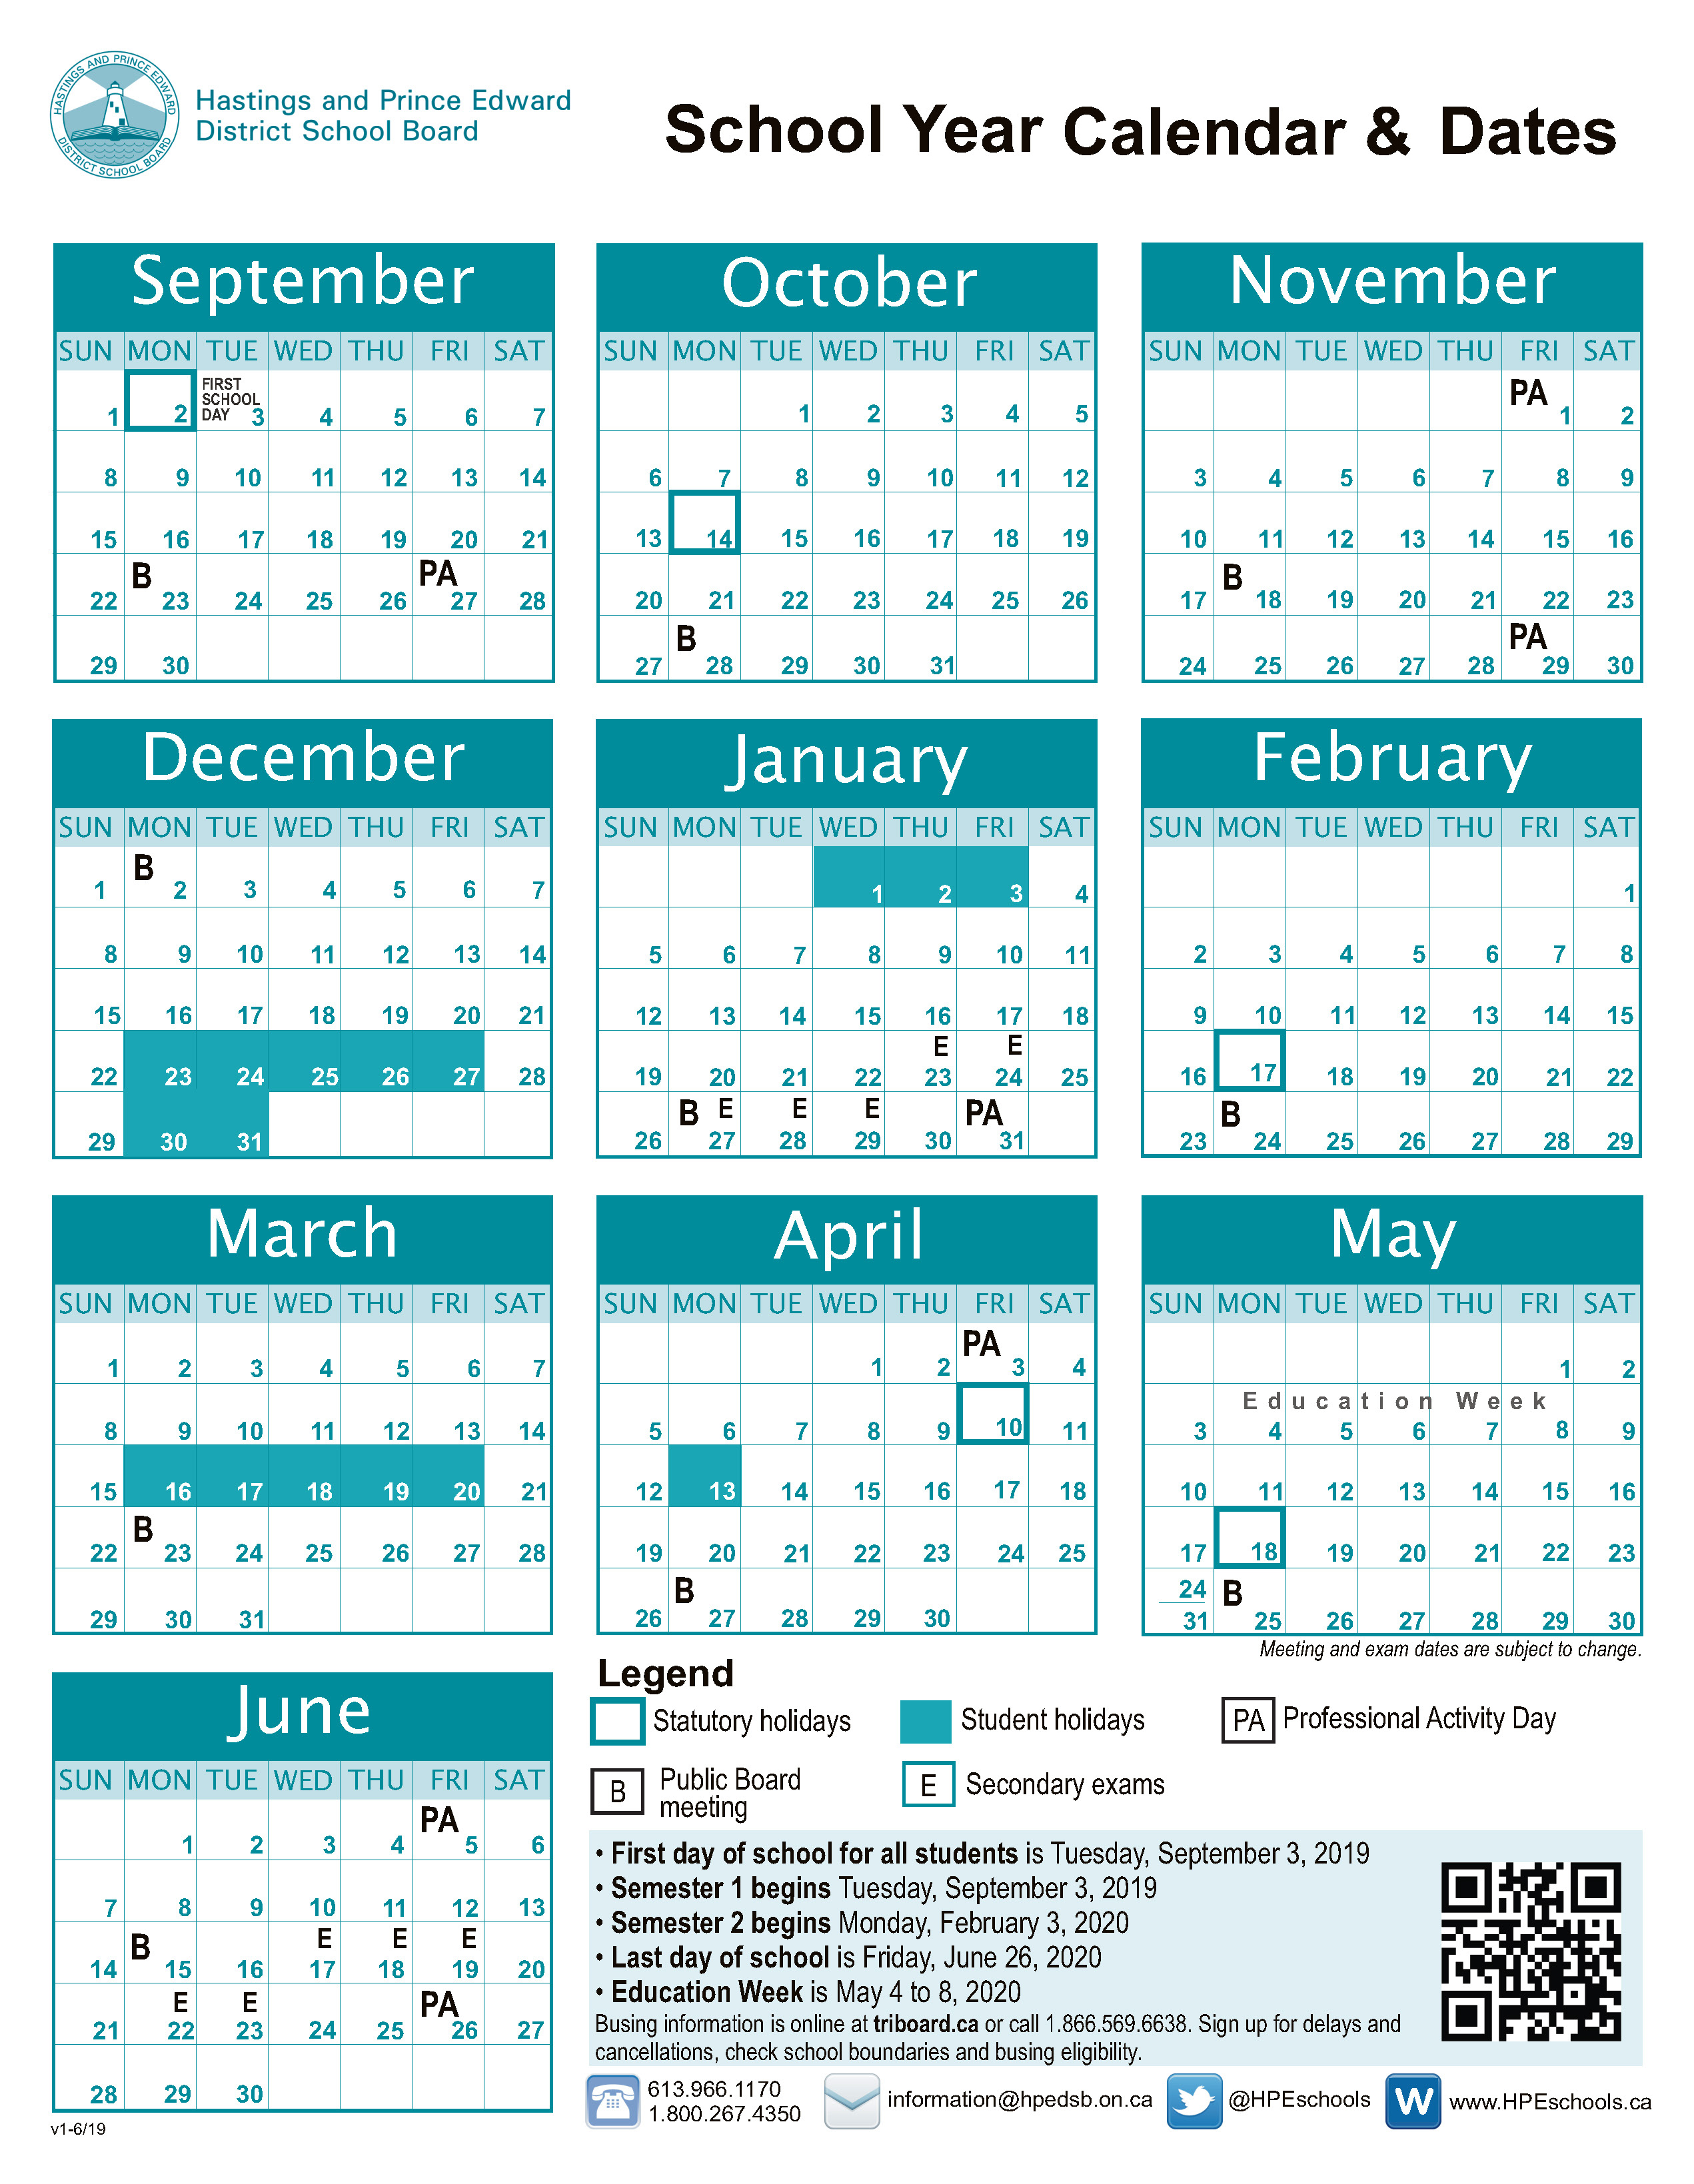 School Year Calendar and Dates